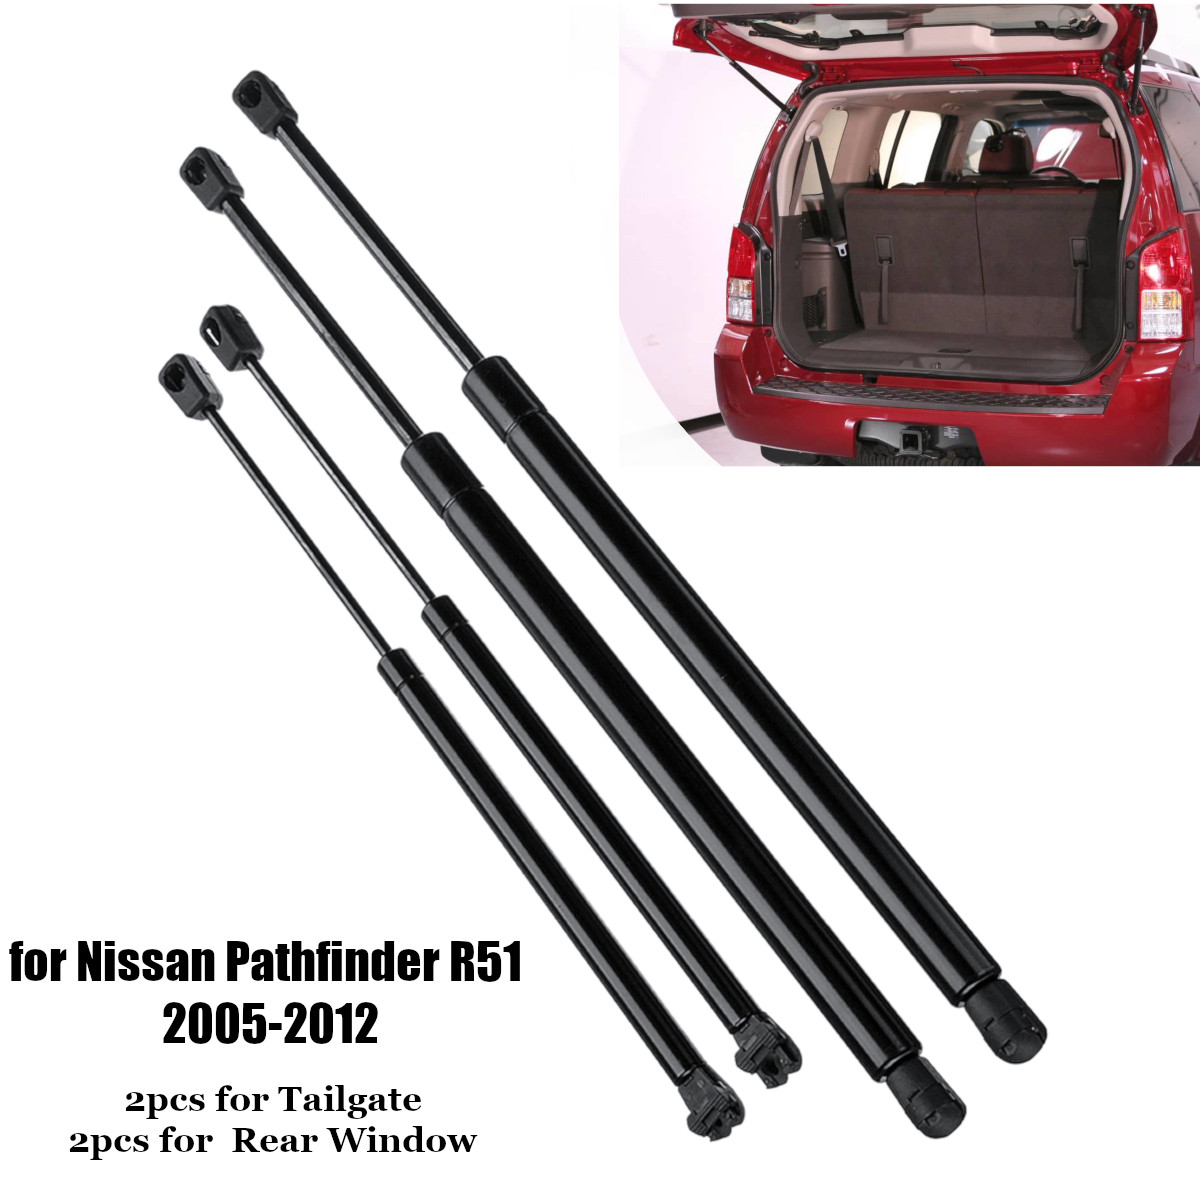 4X Rear Window Tailgate Boot Gas Spring Struts Strut Support Rod Arm Bars For Nissan Pathfinder R51 2005 2006 2007 2008 - 2012